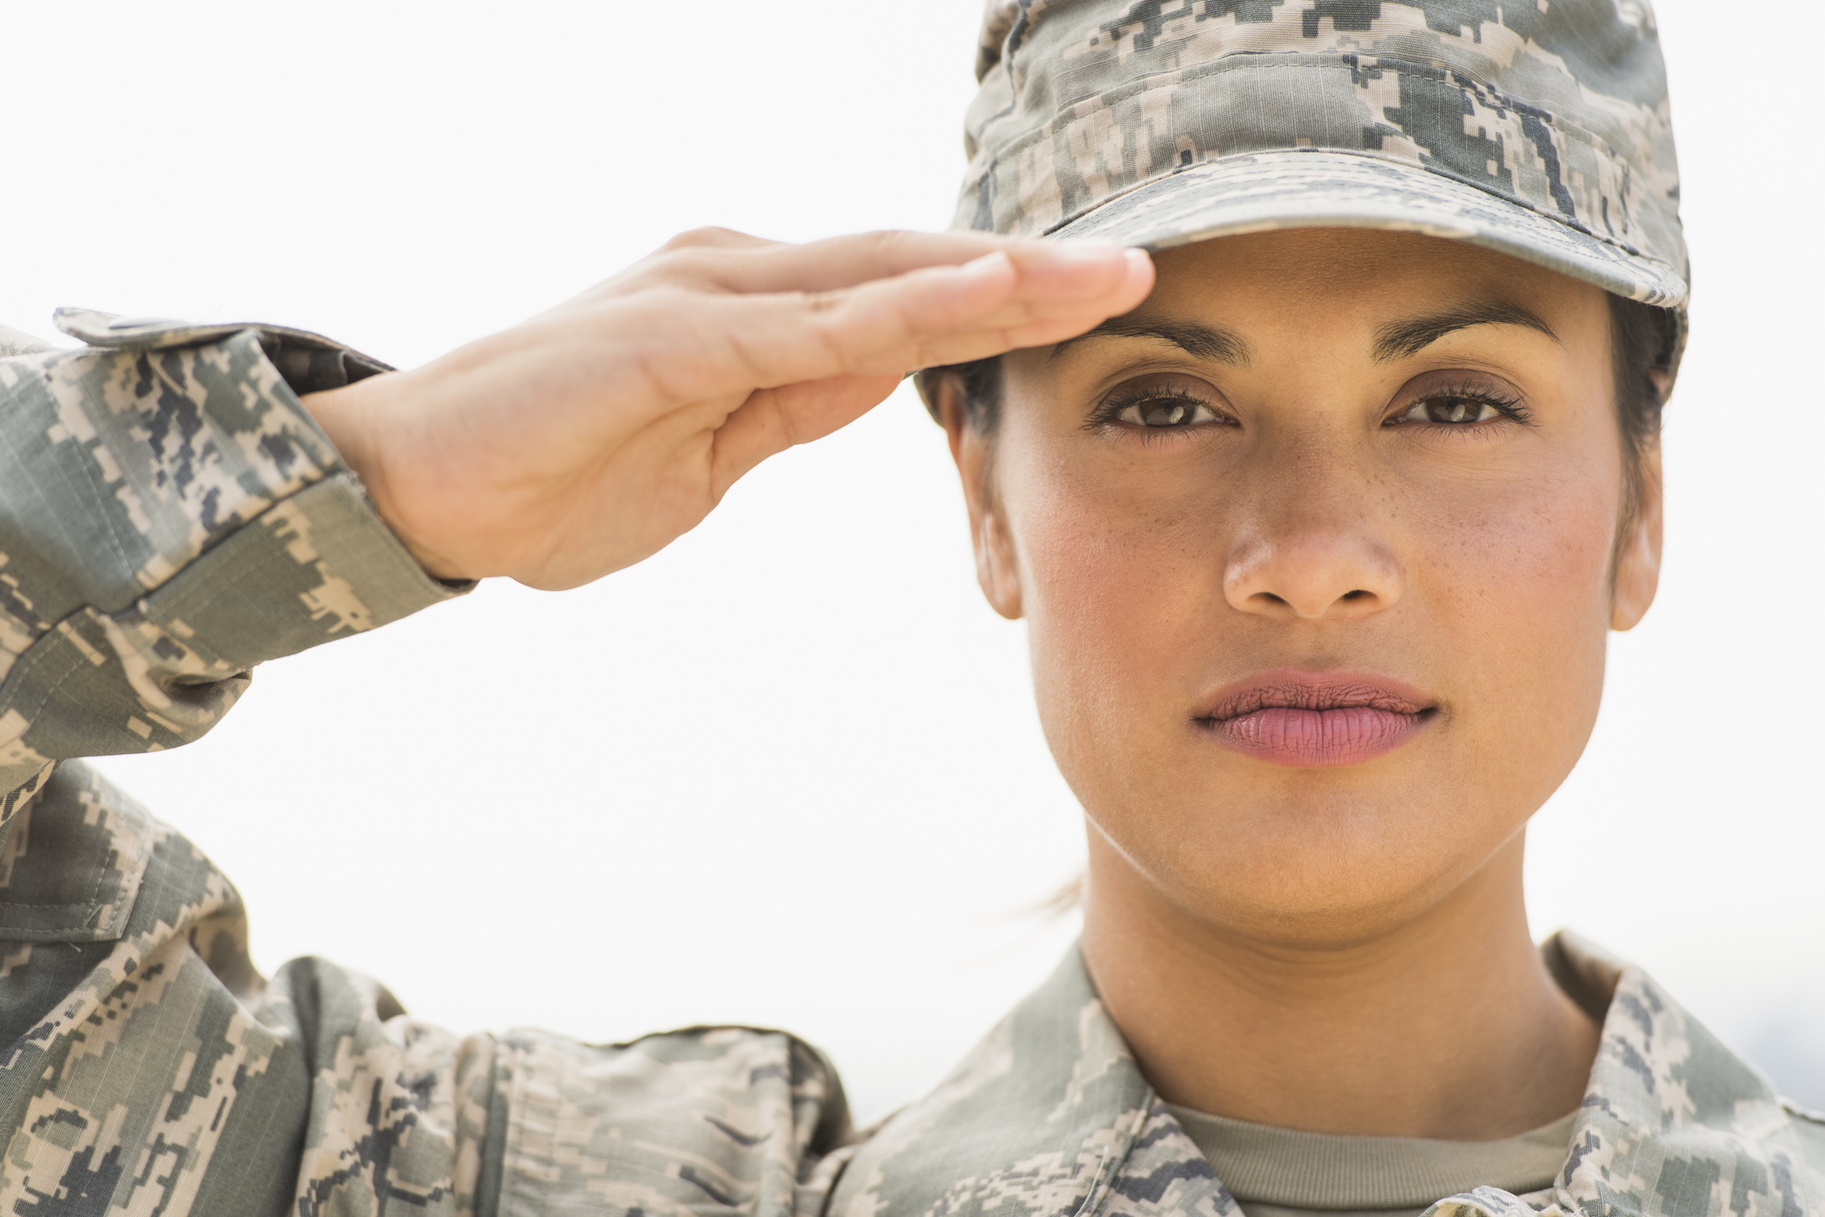 woman in combat Recent policy changes on women in combat: 1992 the defense authorization act repealed the long-standing combat exclusion law for women pilots in the navy and air force.